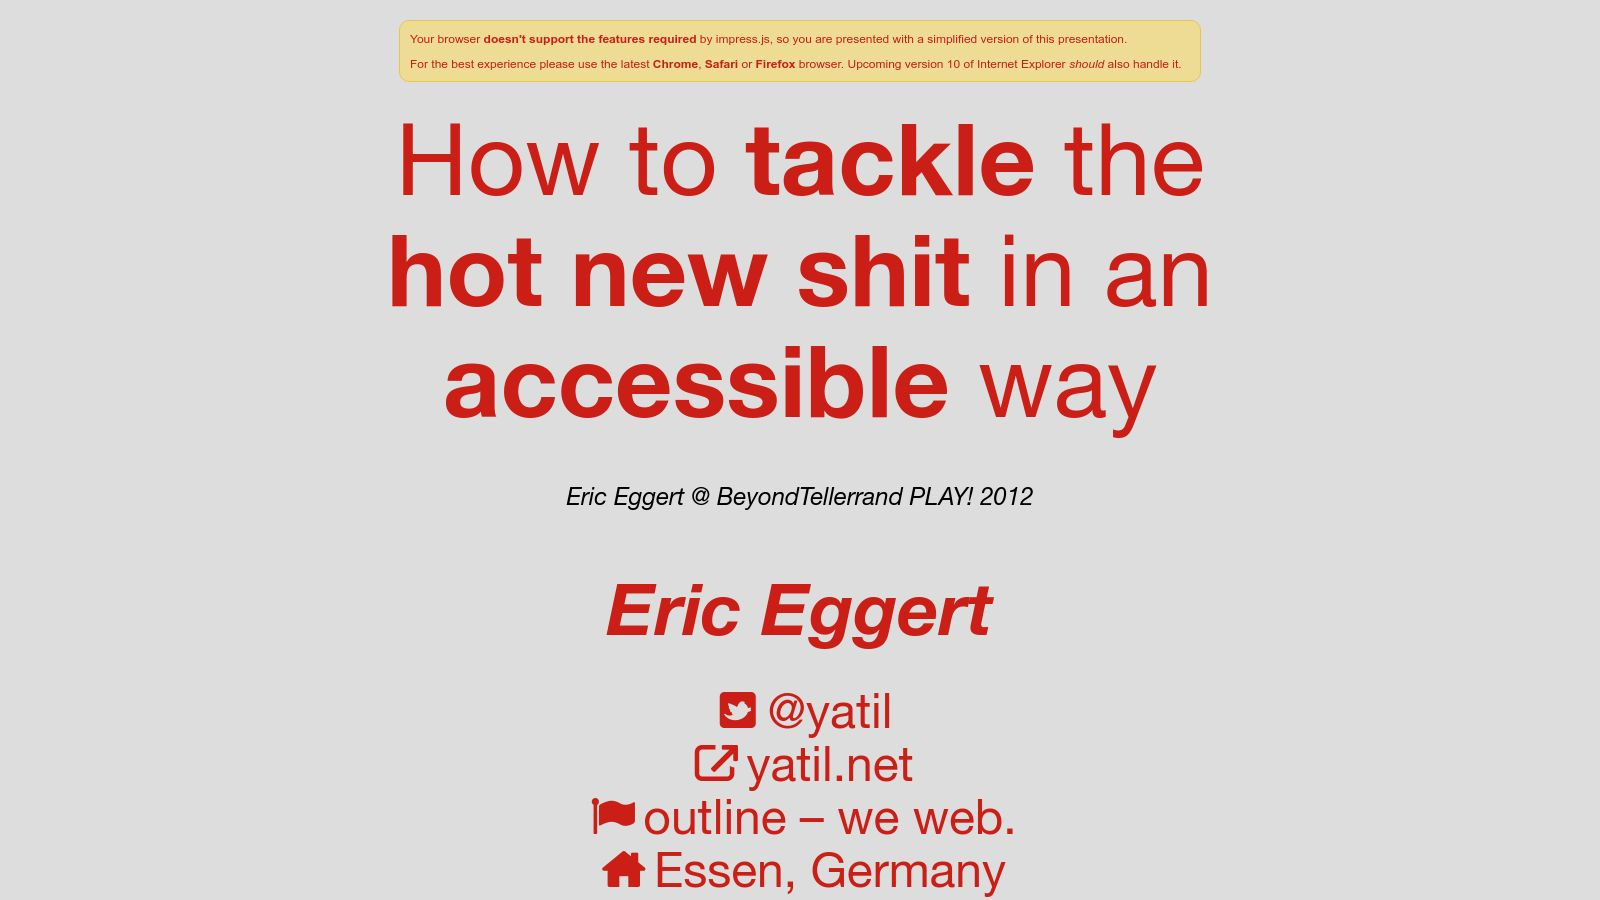 How to tackle the new hot shit in an accessible way